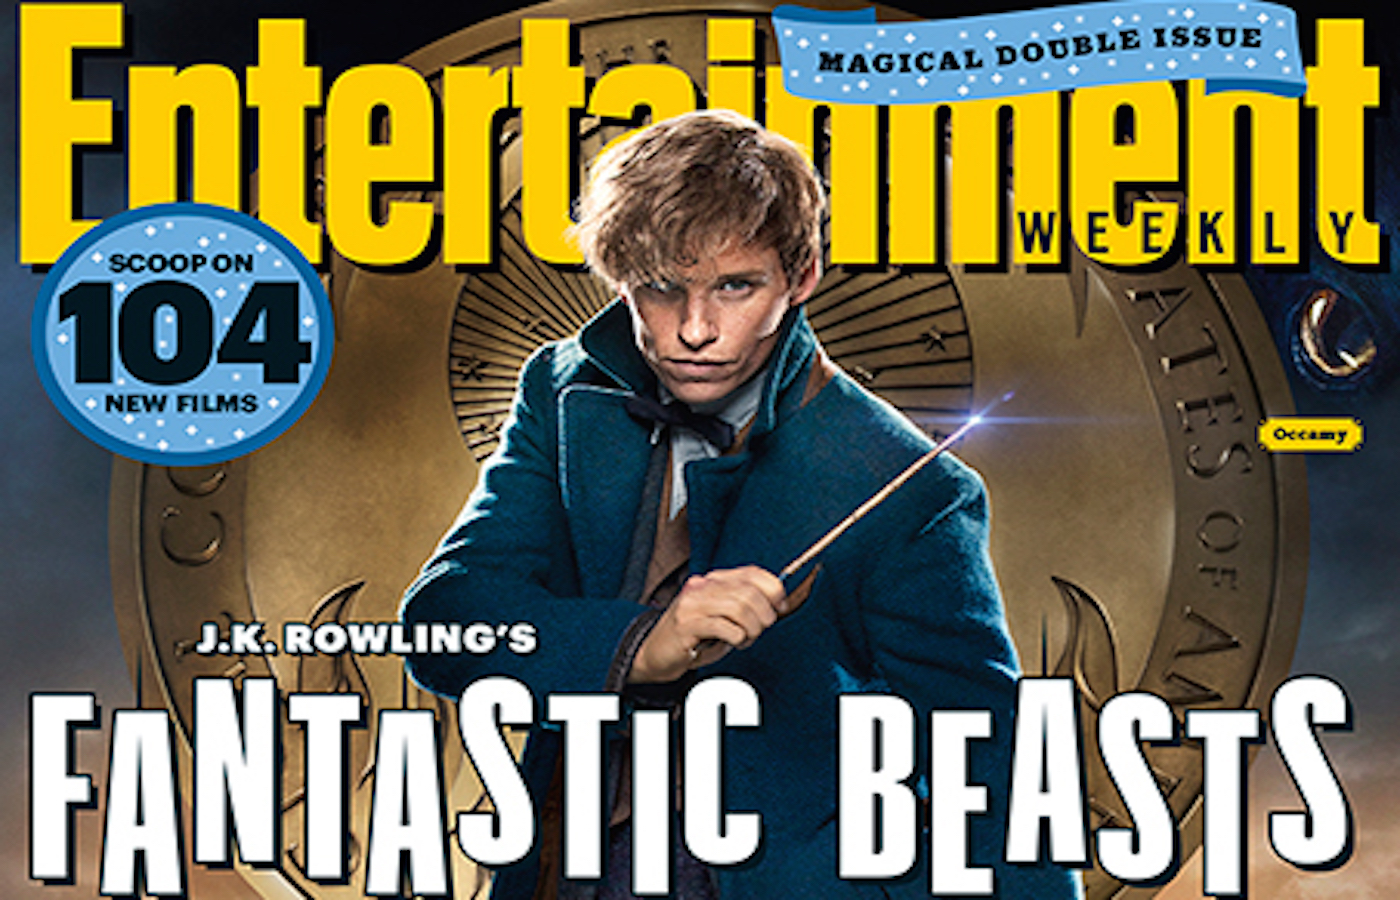 Fantastic beasts ew cover 1